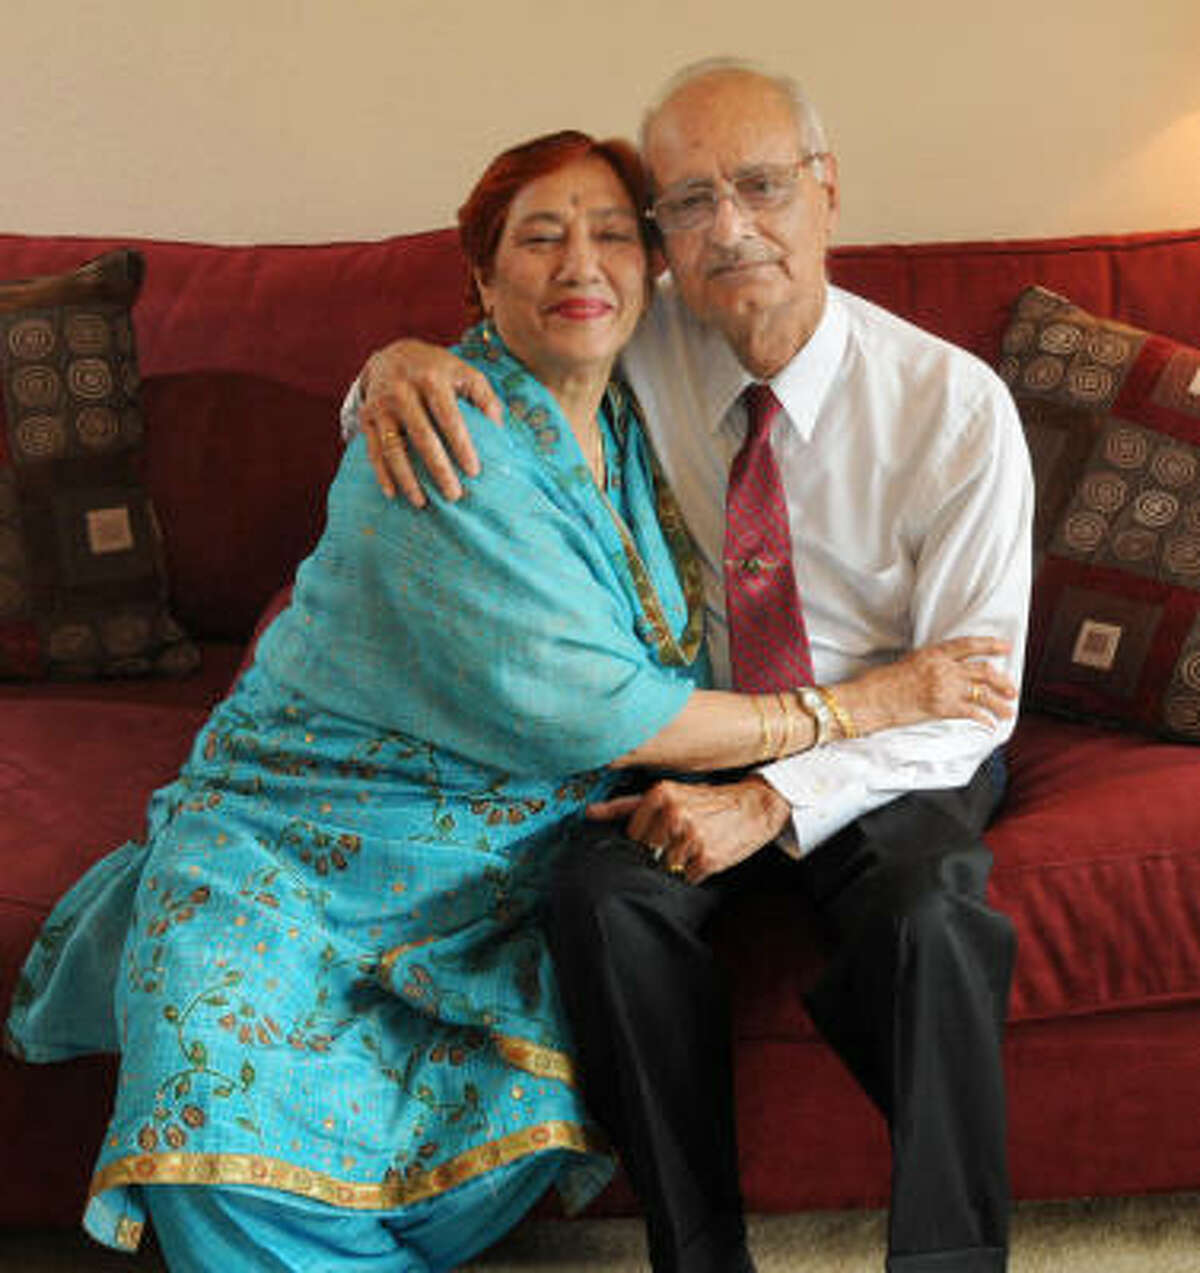 Prem and Mohan Marwaha were married in India 55 years ago.